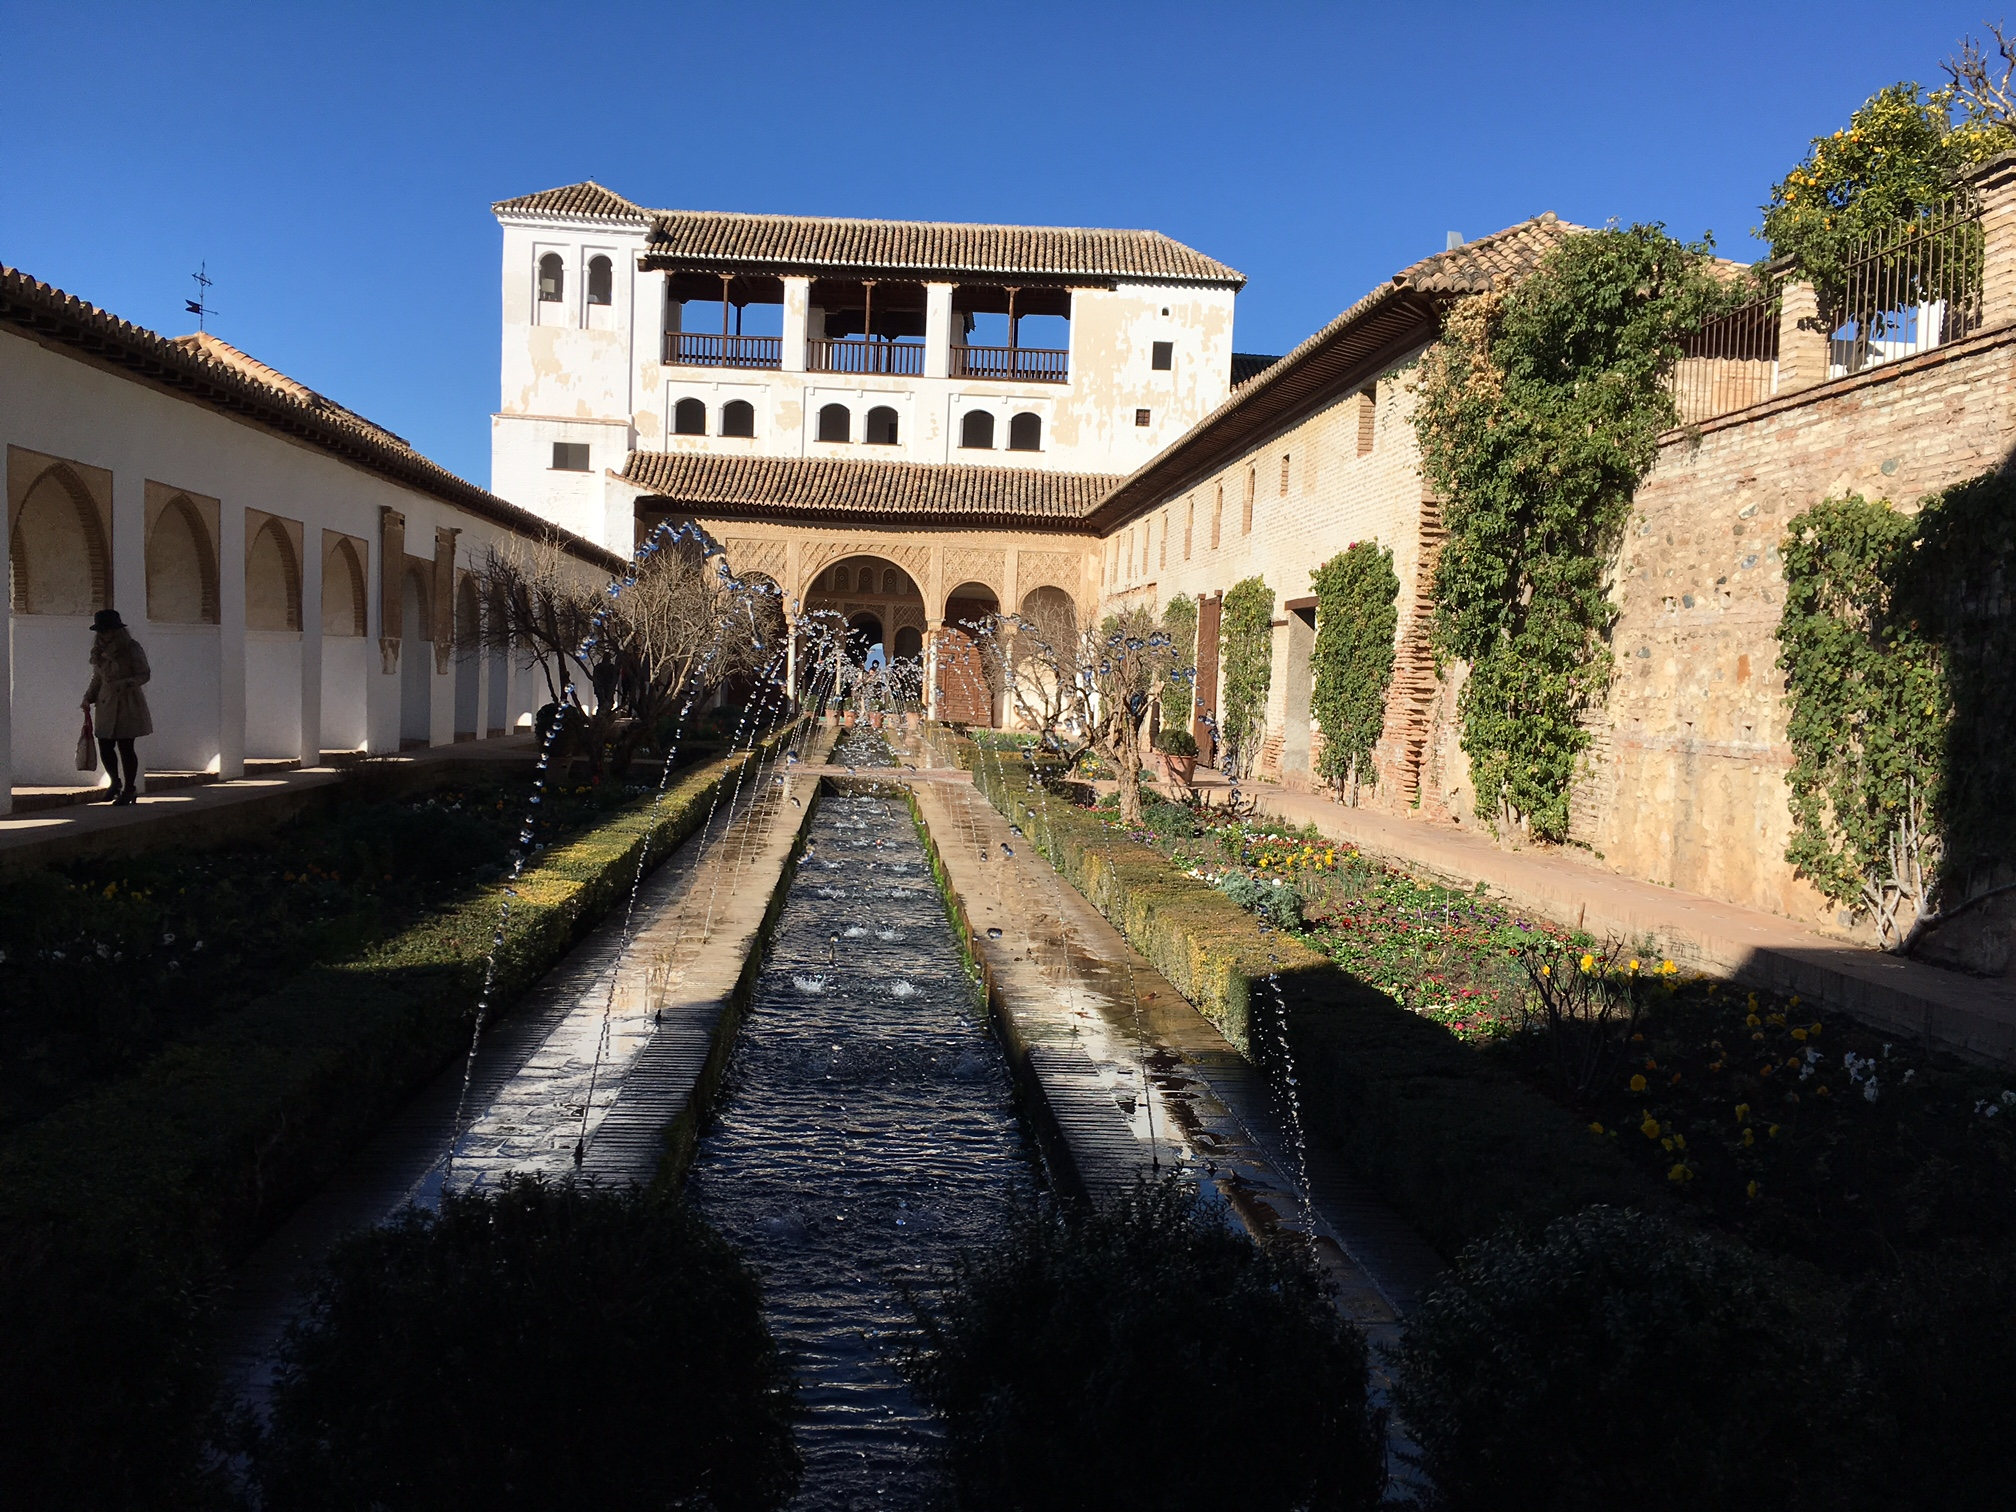 This is the court of the Main Canal, it draws water from the Royal Canal (Acequia Real), the principal hydraulic source for the entire historical-artistic monument complex. The court channel was originally in the shape of a crossing, like the one in the Court of the Lions (Patio de los Leones), supplying water to four oblique parterres.